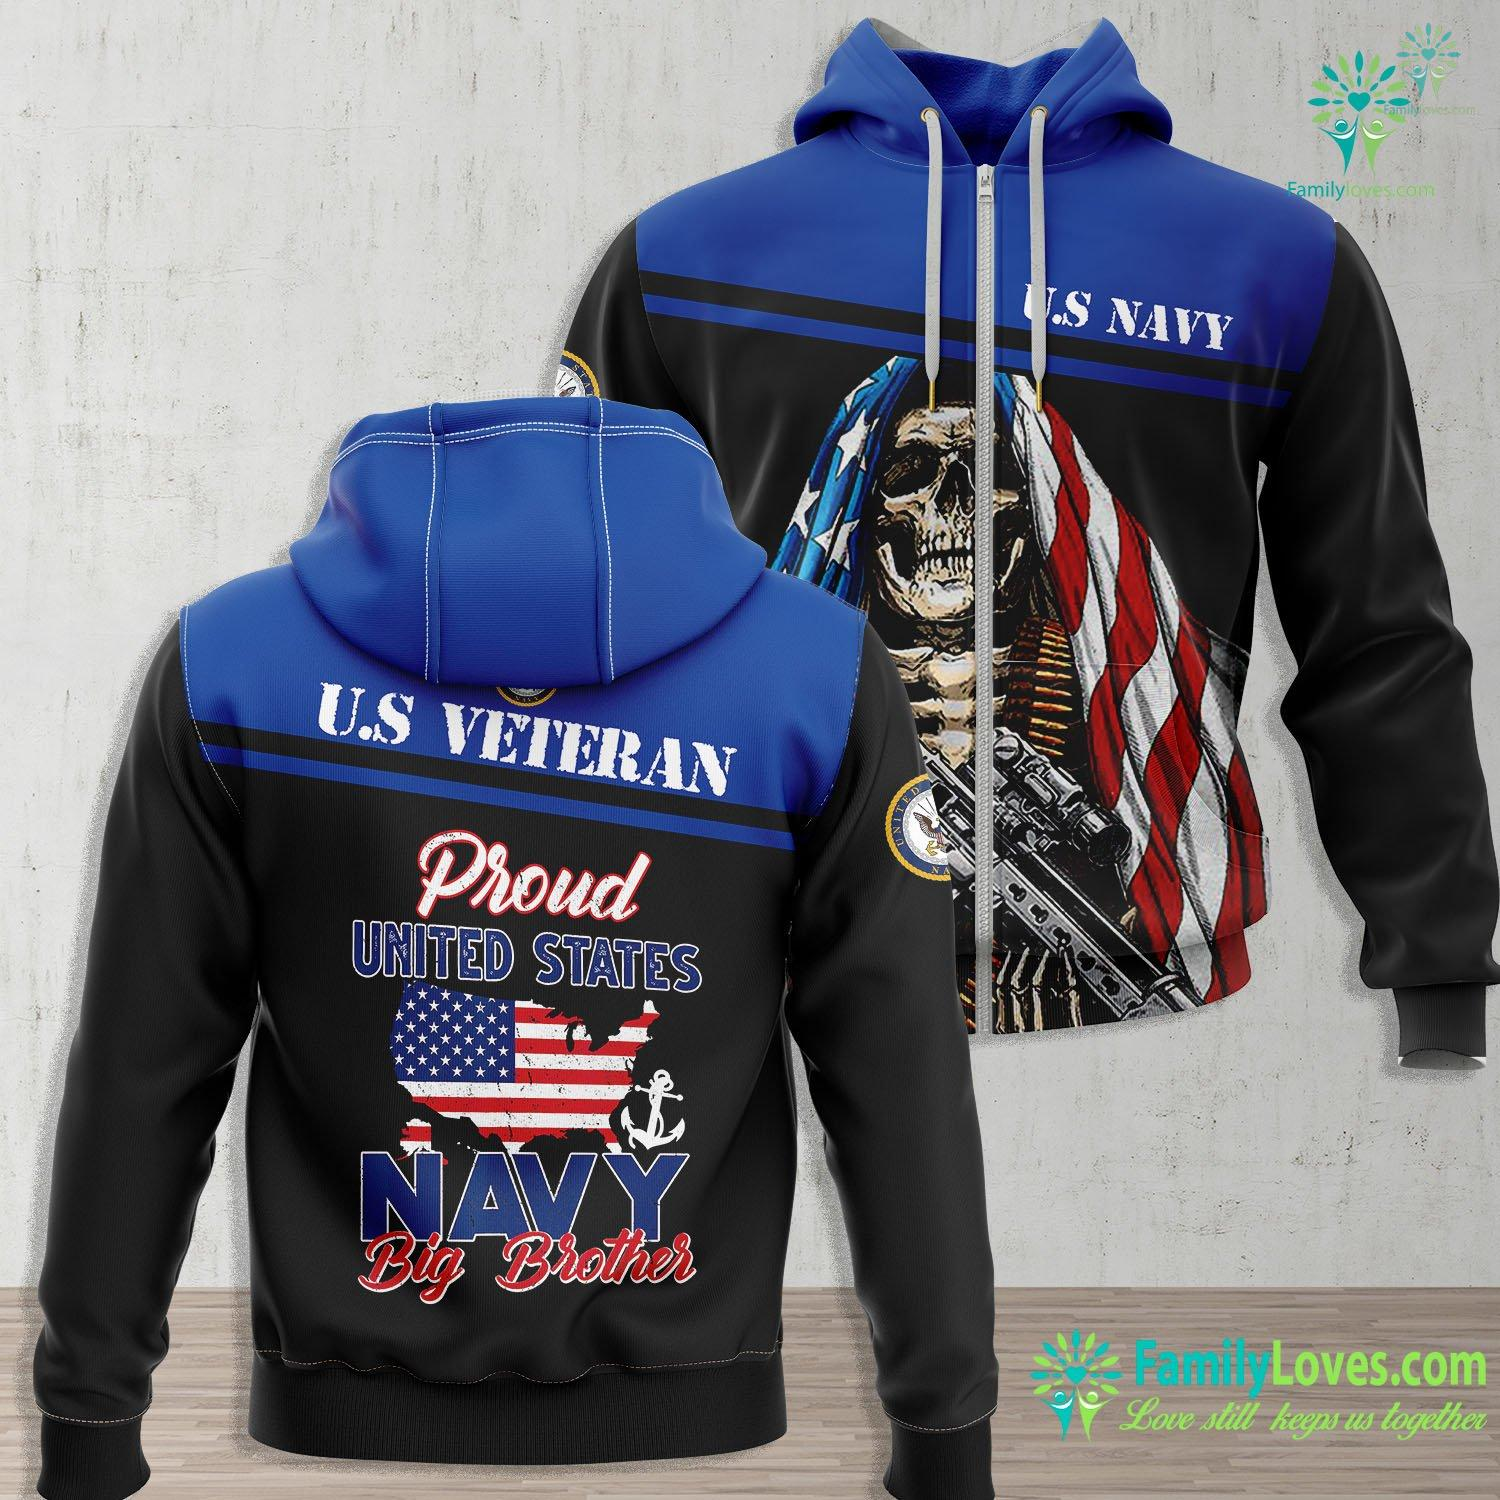 Us Navy T Shirt Proud Navy Big Brother Us Flag Family S Army Military Navy Zip-up Hoodie All Over Print Familyloves.com